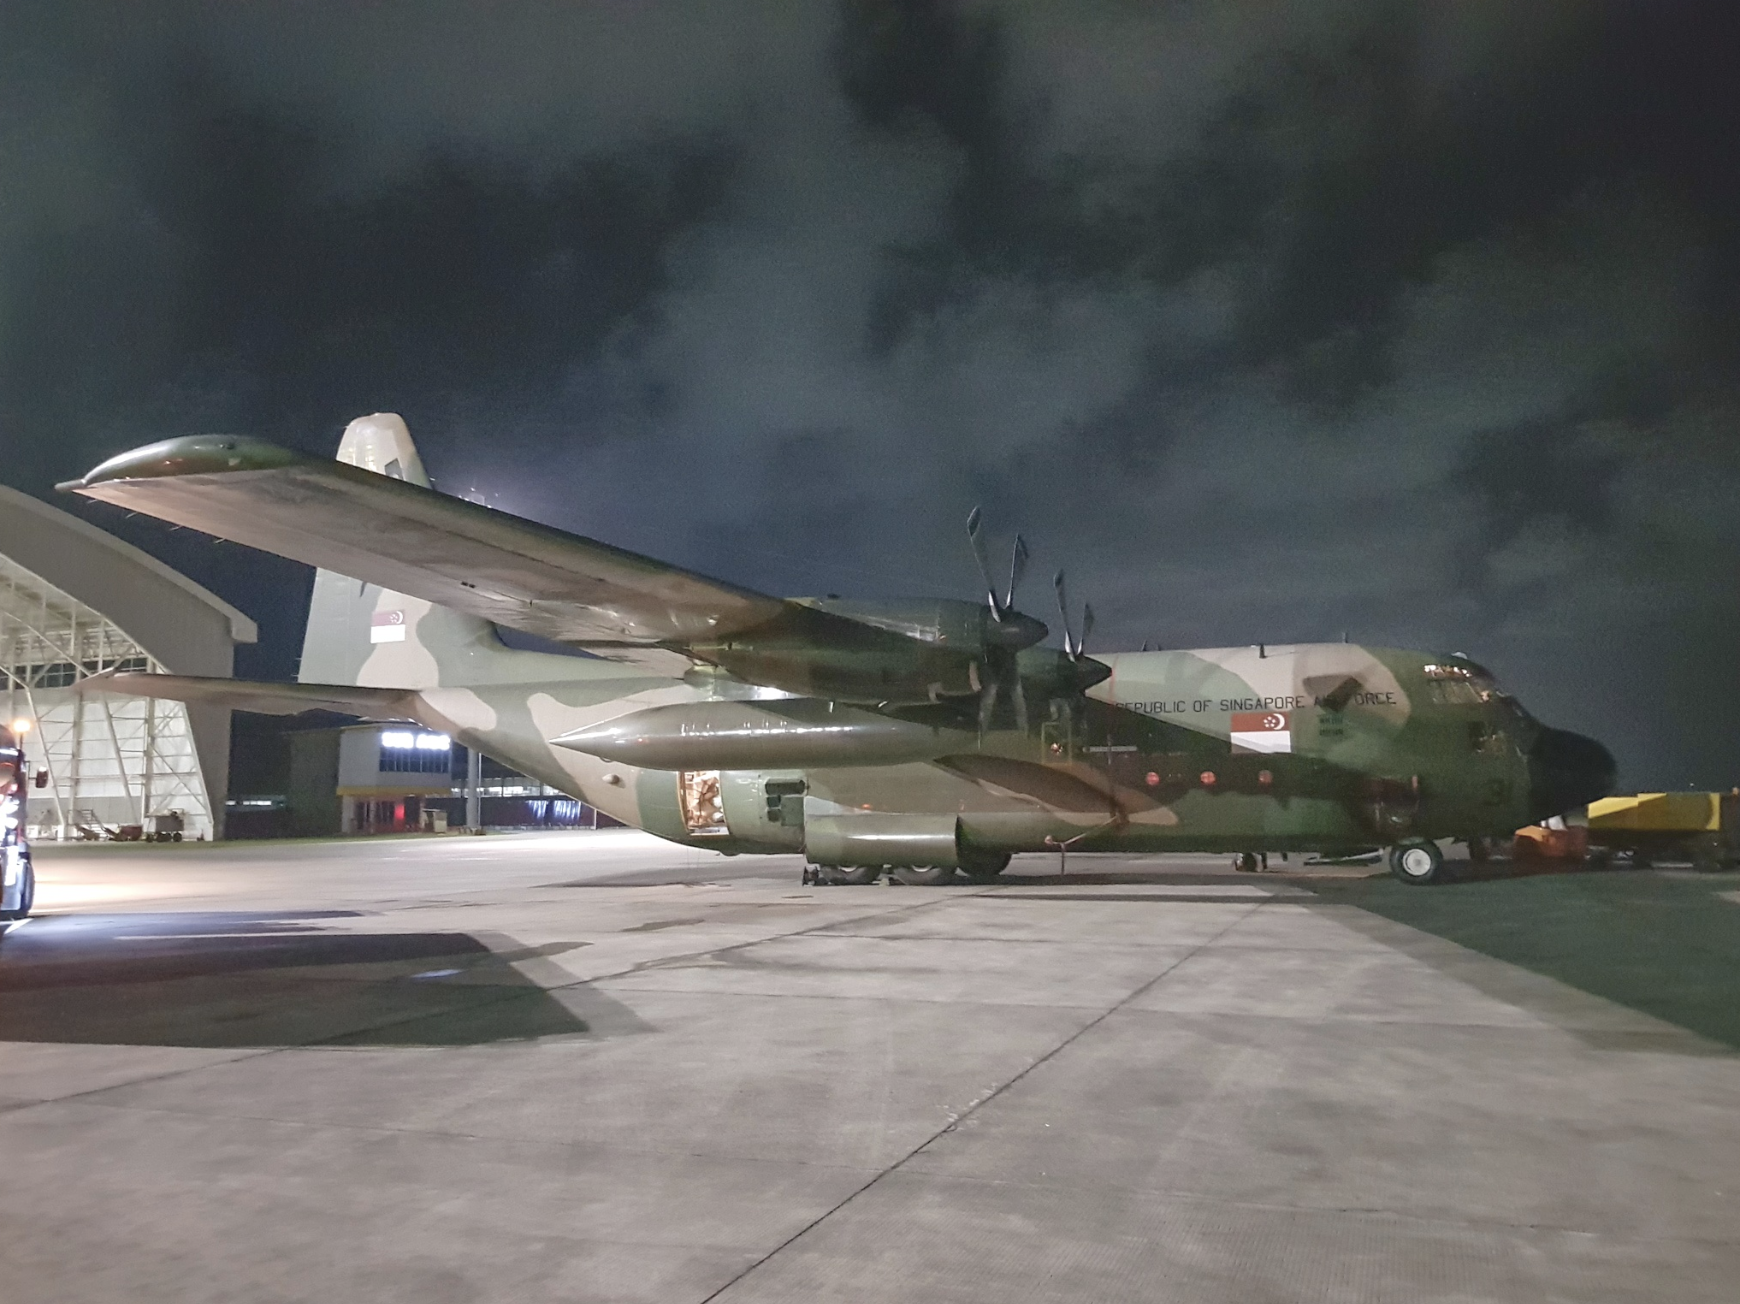 One of the Republic of Singapore Air Force C-130 transport aircraft that delivered humanitarian supplies to Indonesia at Balikpapan Airport. Photo courtesy: Mindef